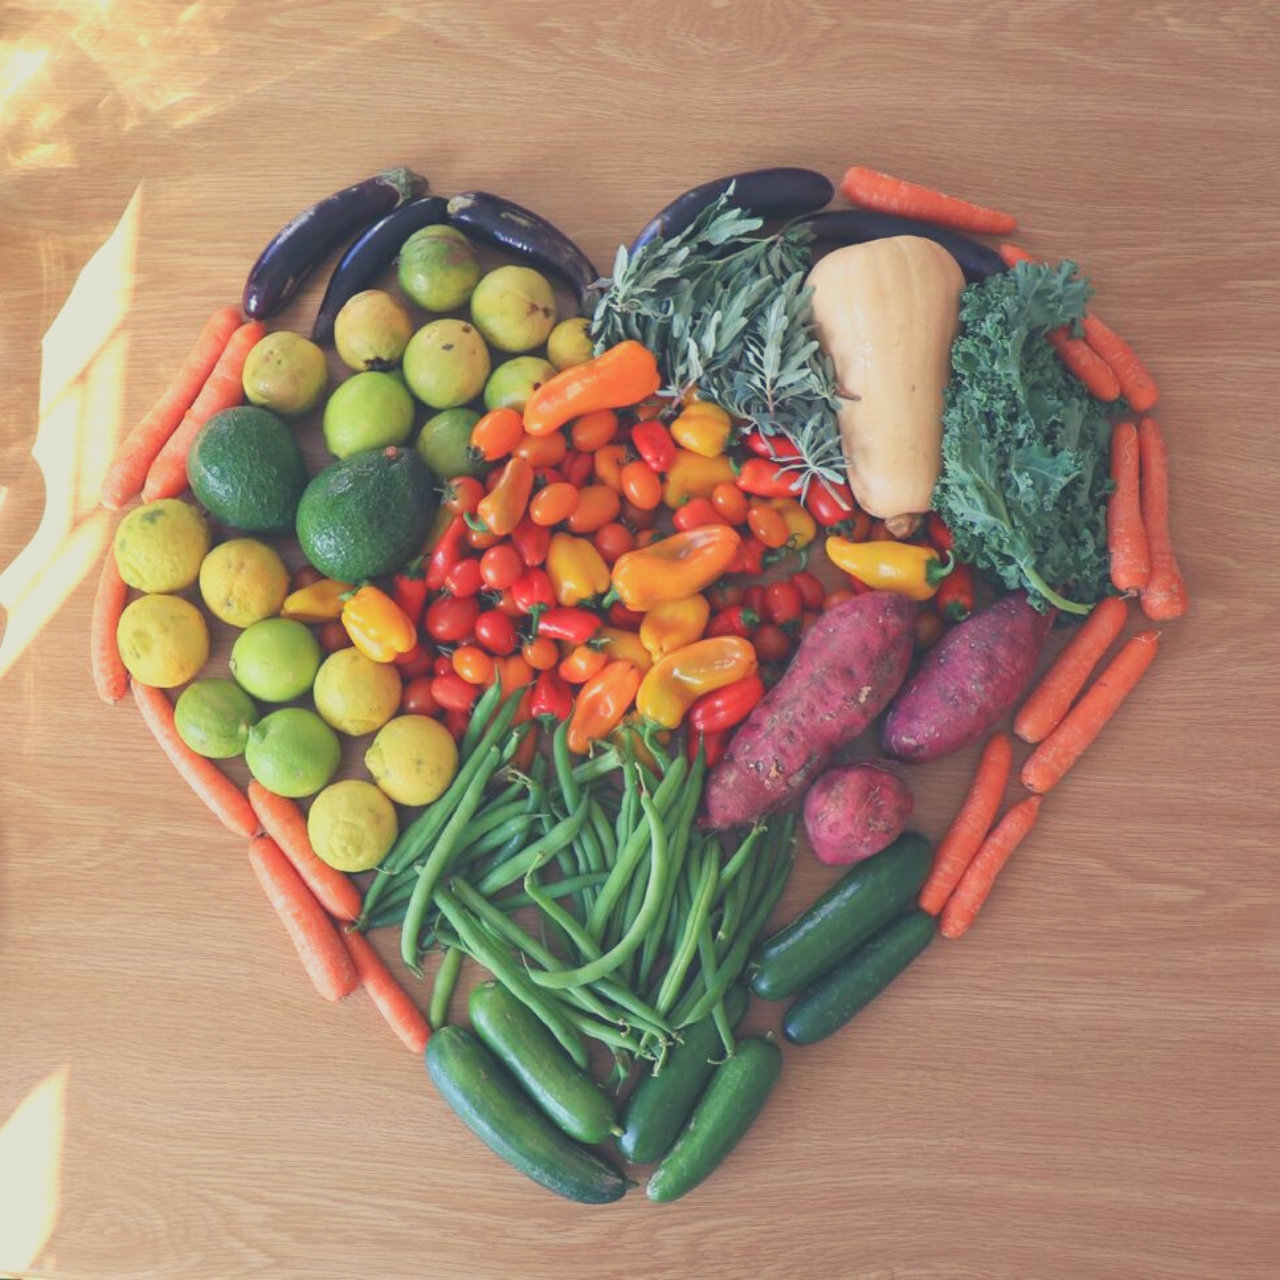 Fresh harvest laid out to form the shape of a heart.